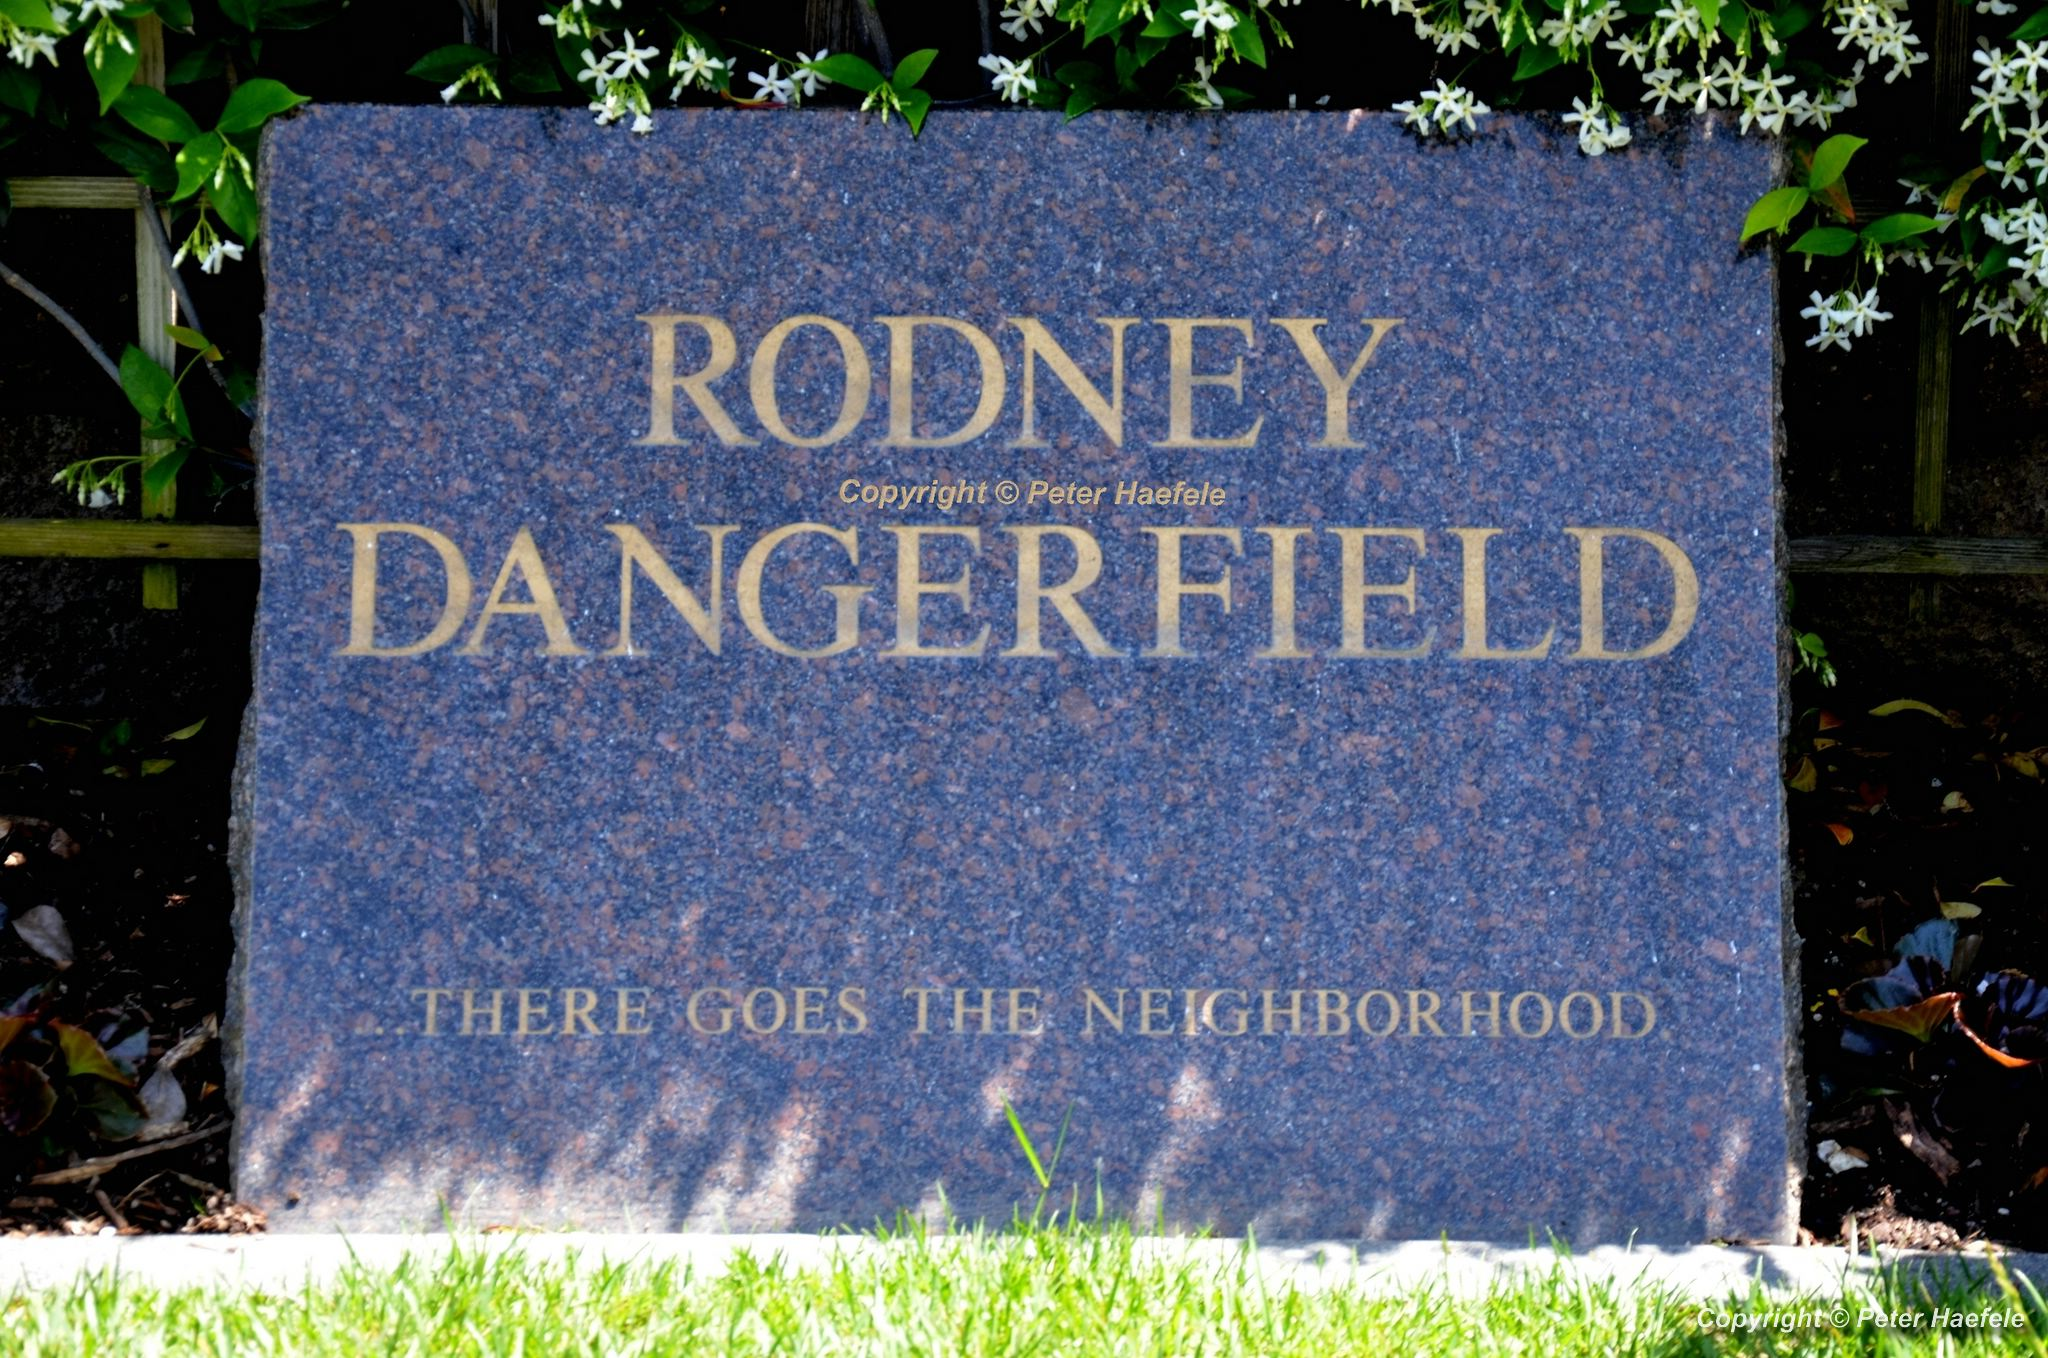 Roadtrip USA - Westwood Village Memorial Park Cemetery - Grave of Rodney Dangerfield